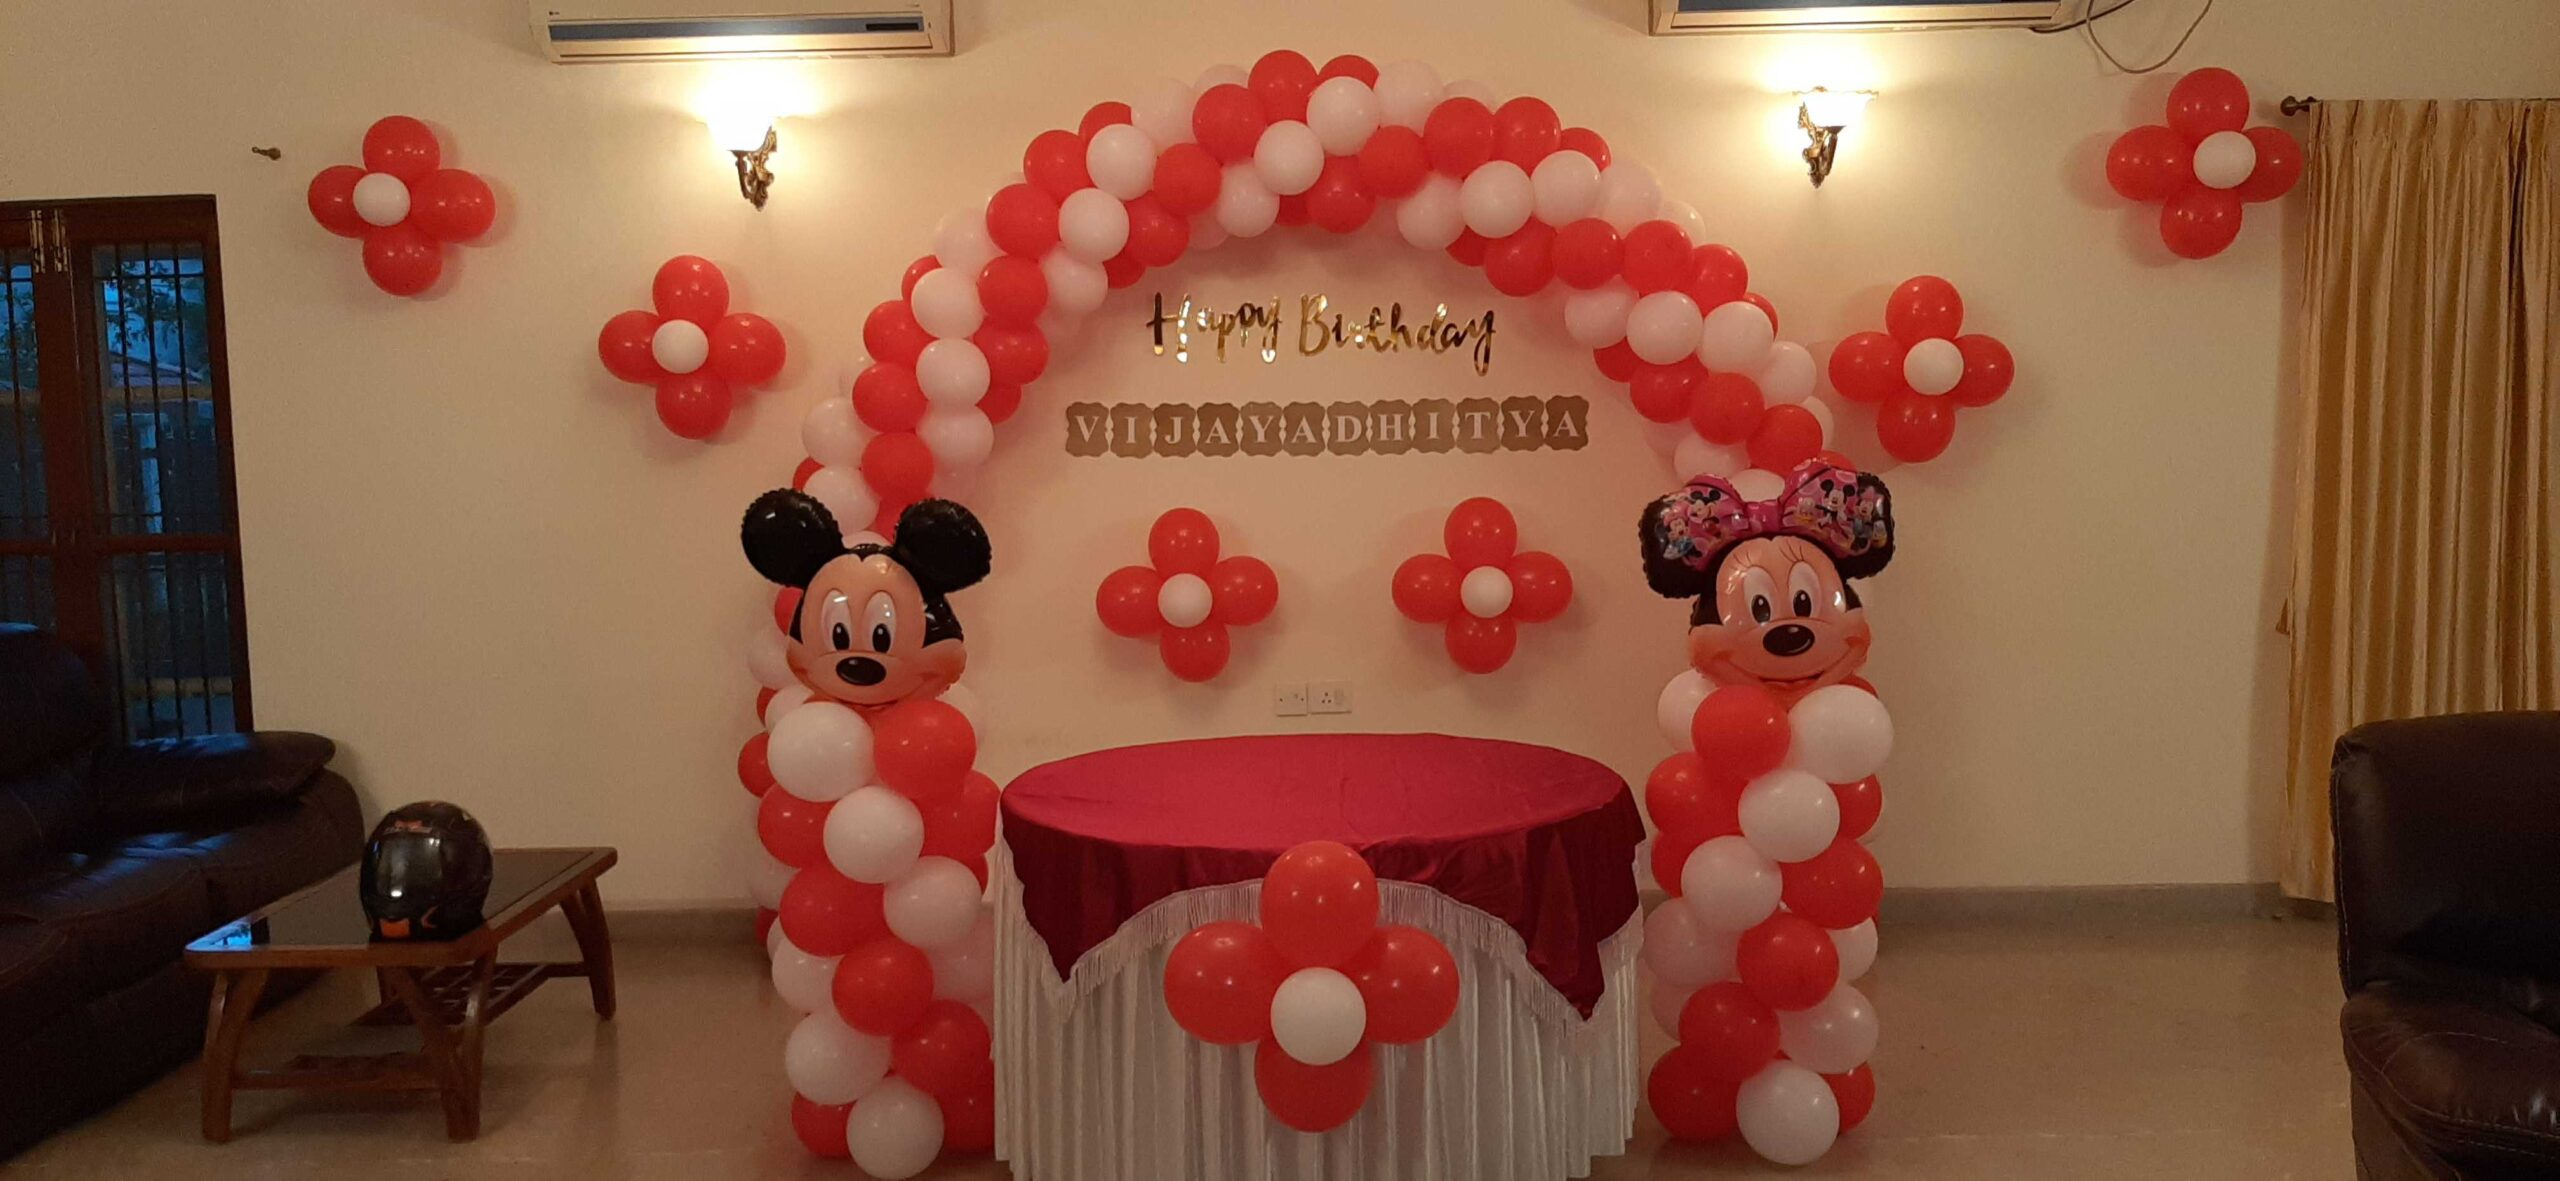 Simple Balloon Decoration Ideas For Birthday At Home